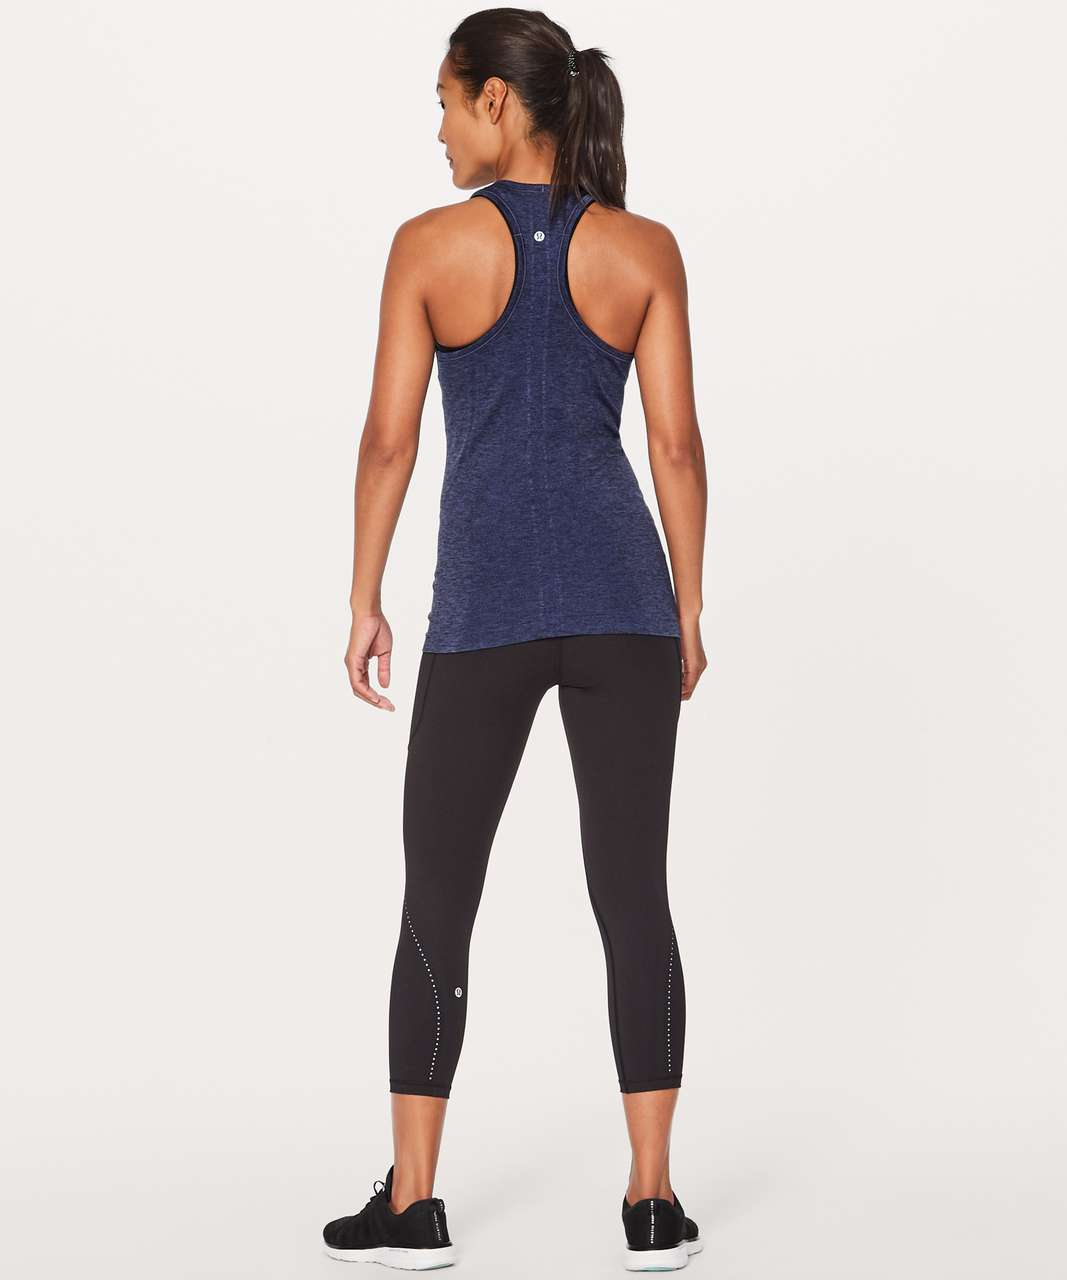 Lululemon Swiftly Tech Racerback - Stony Grape / Black